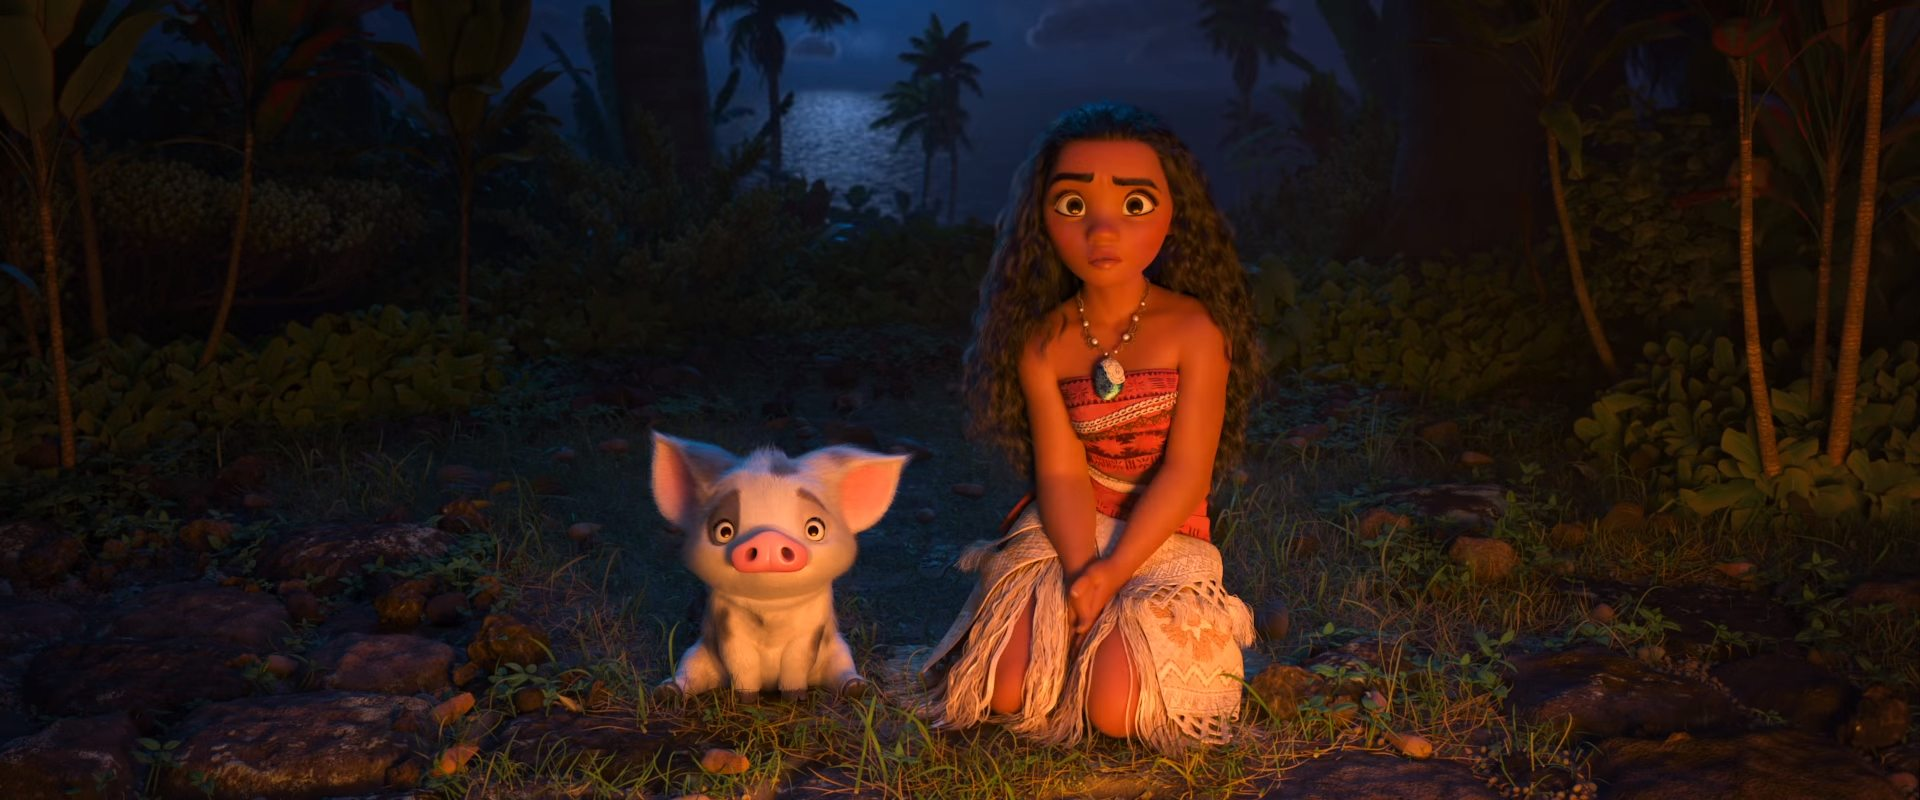 How 'Moana' Finally Settled The Disney Princess Debate